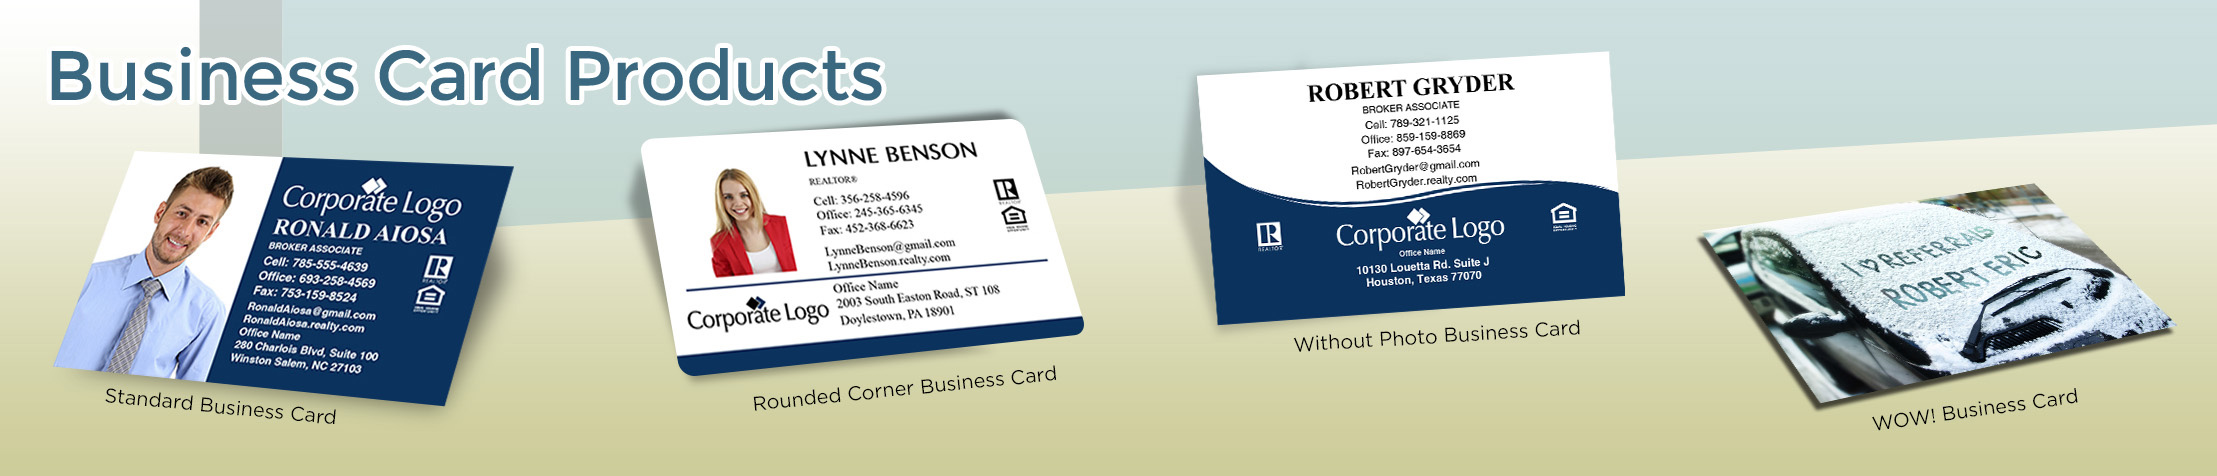 Windermere Real Estate Business Card Products - Windermere  - Unique, Custom Business Cards Printed on Quality Stock with Creative Designs for Realtors | BestPrintBuy.com